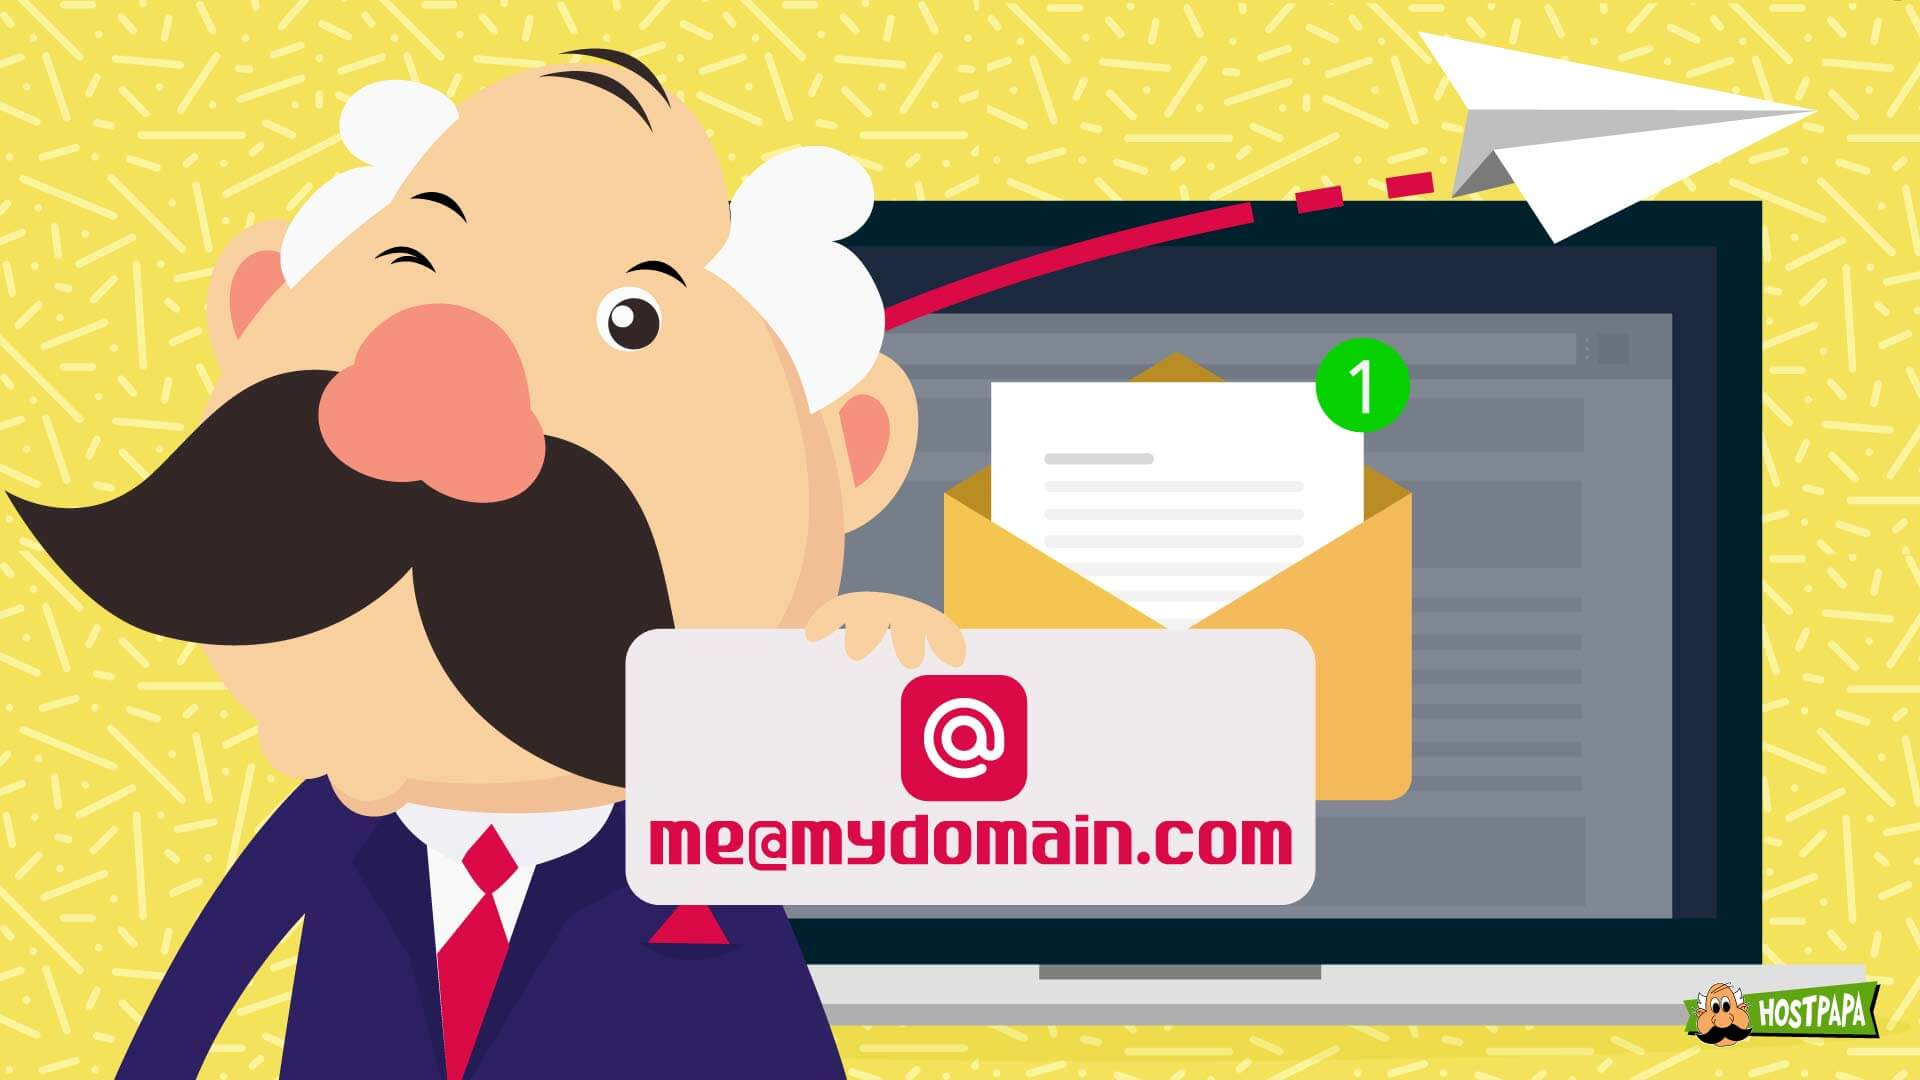 Why Does Your Business Need a Domain Email Address